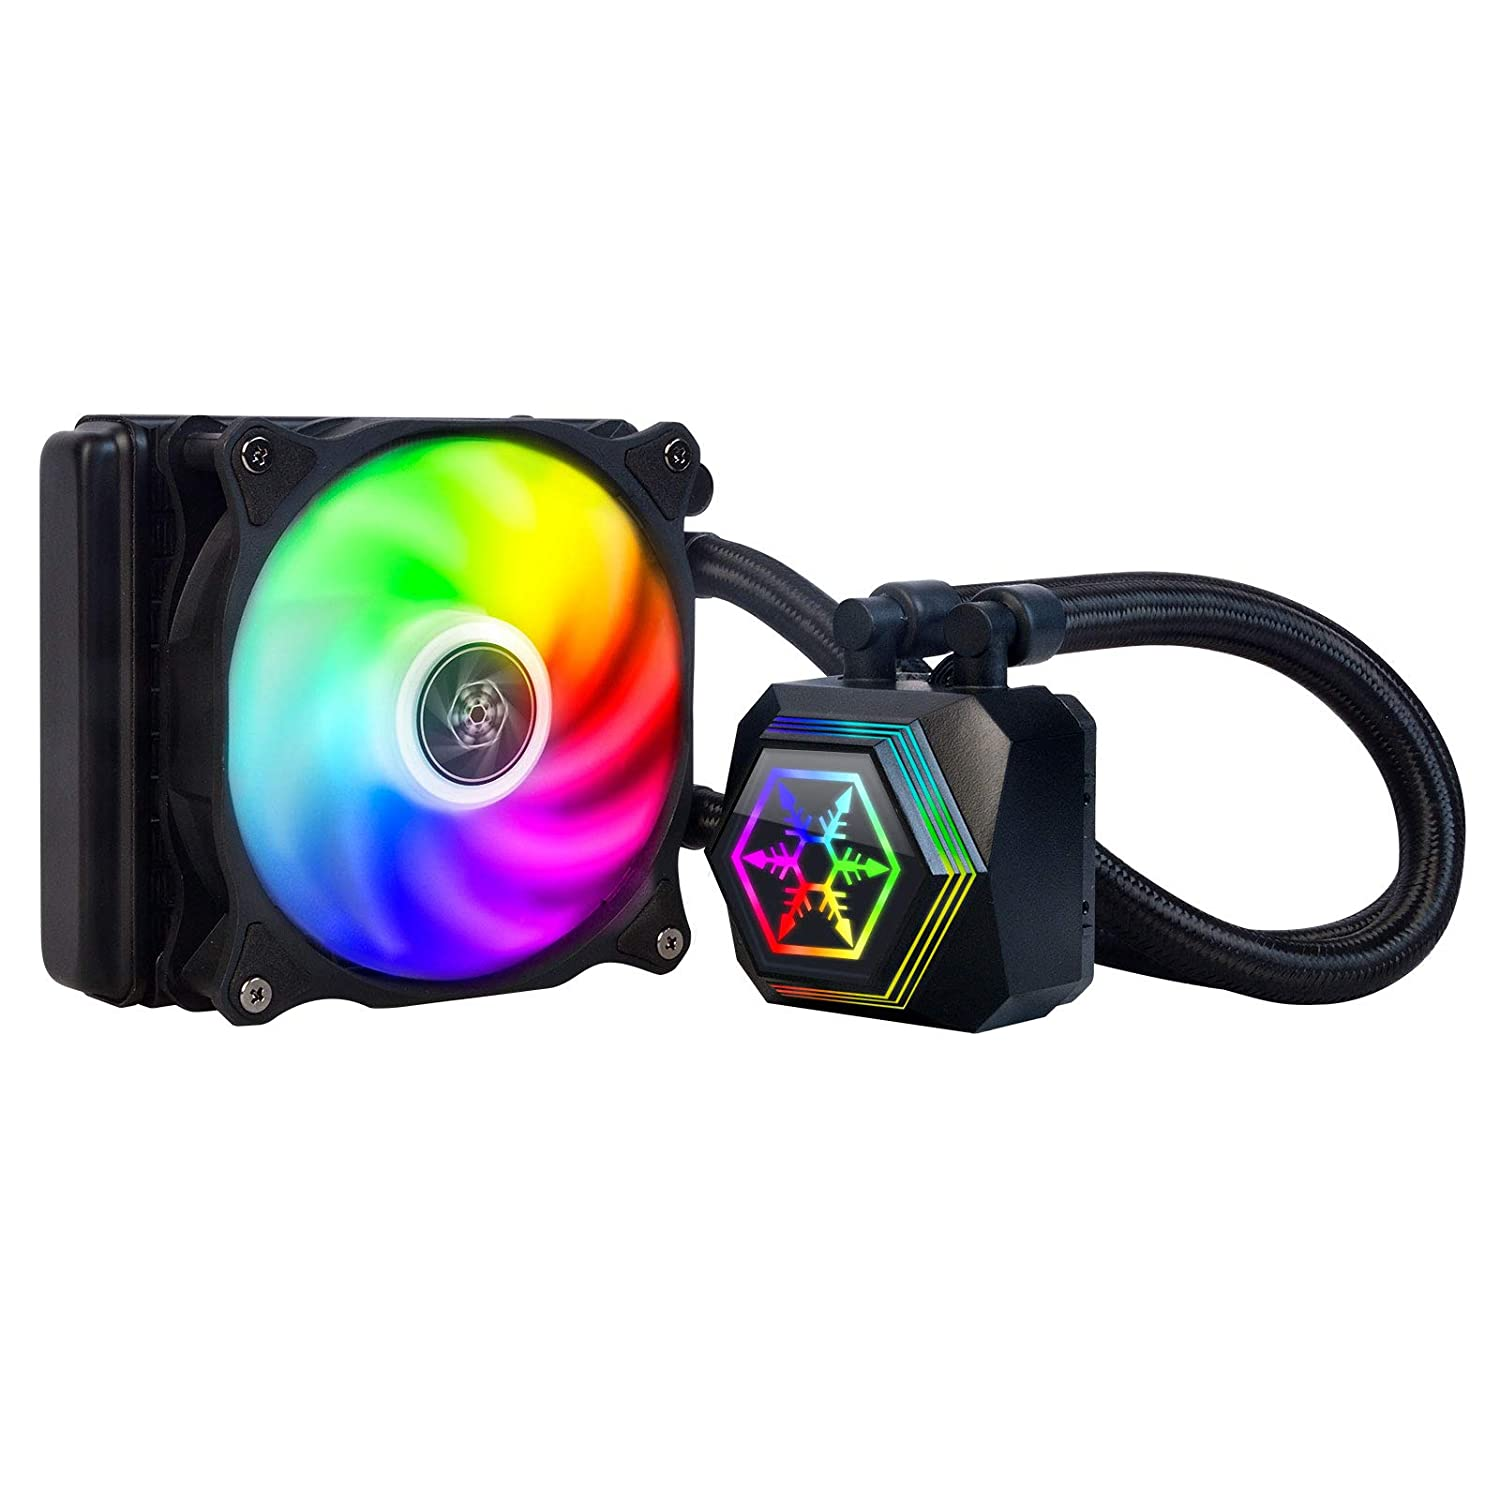 SilverStone Technology PF120-ARGB Permafrost 120mm All in One Multi-Chamber Addressable RGB CPU Liquid Cooler Supports Intel/AMD